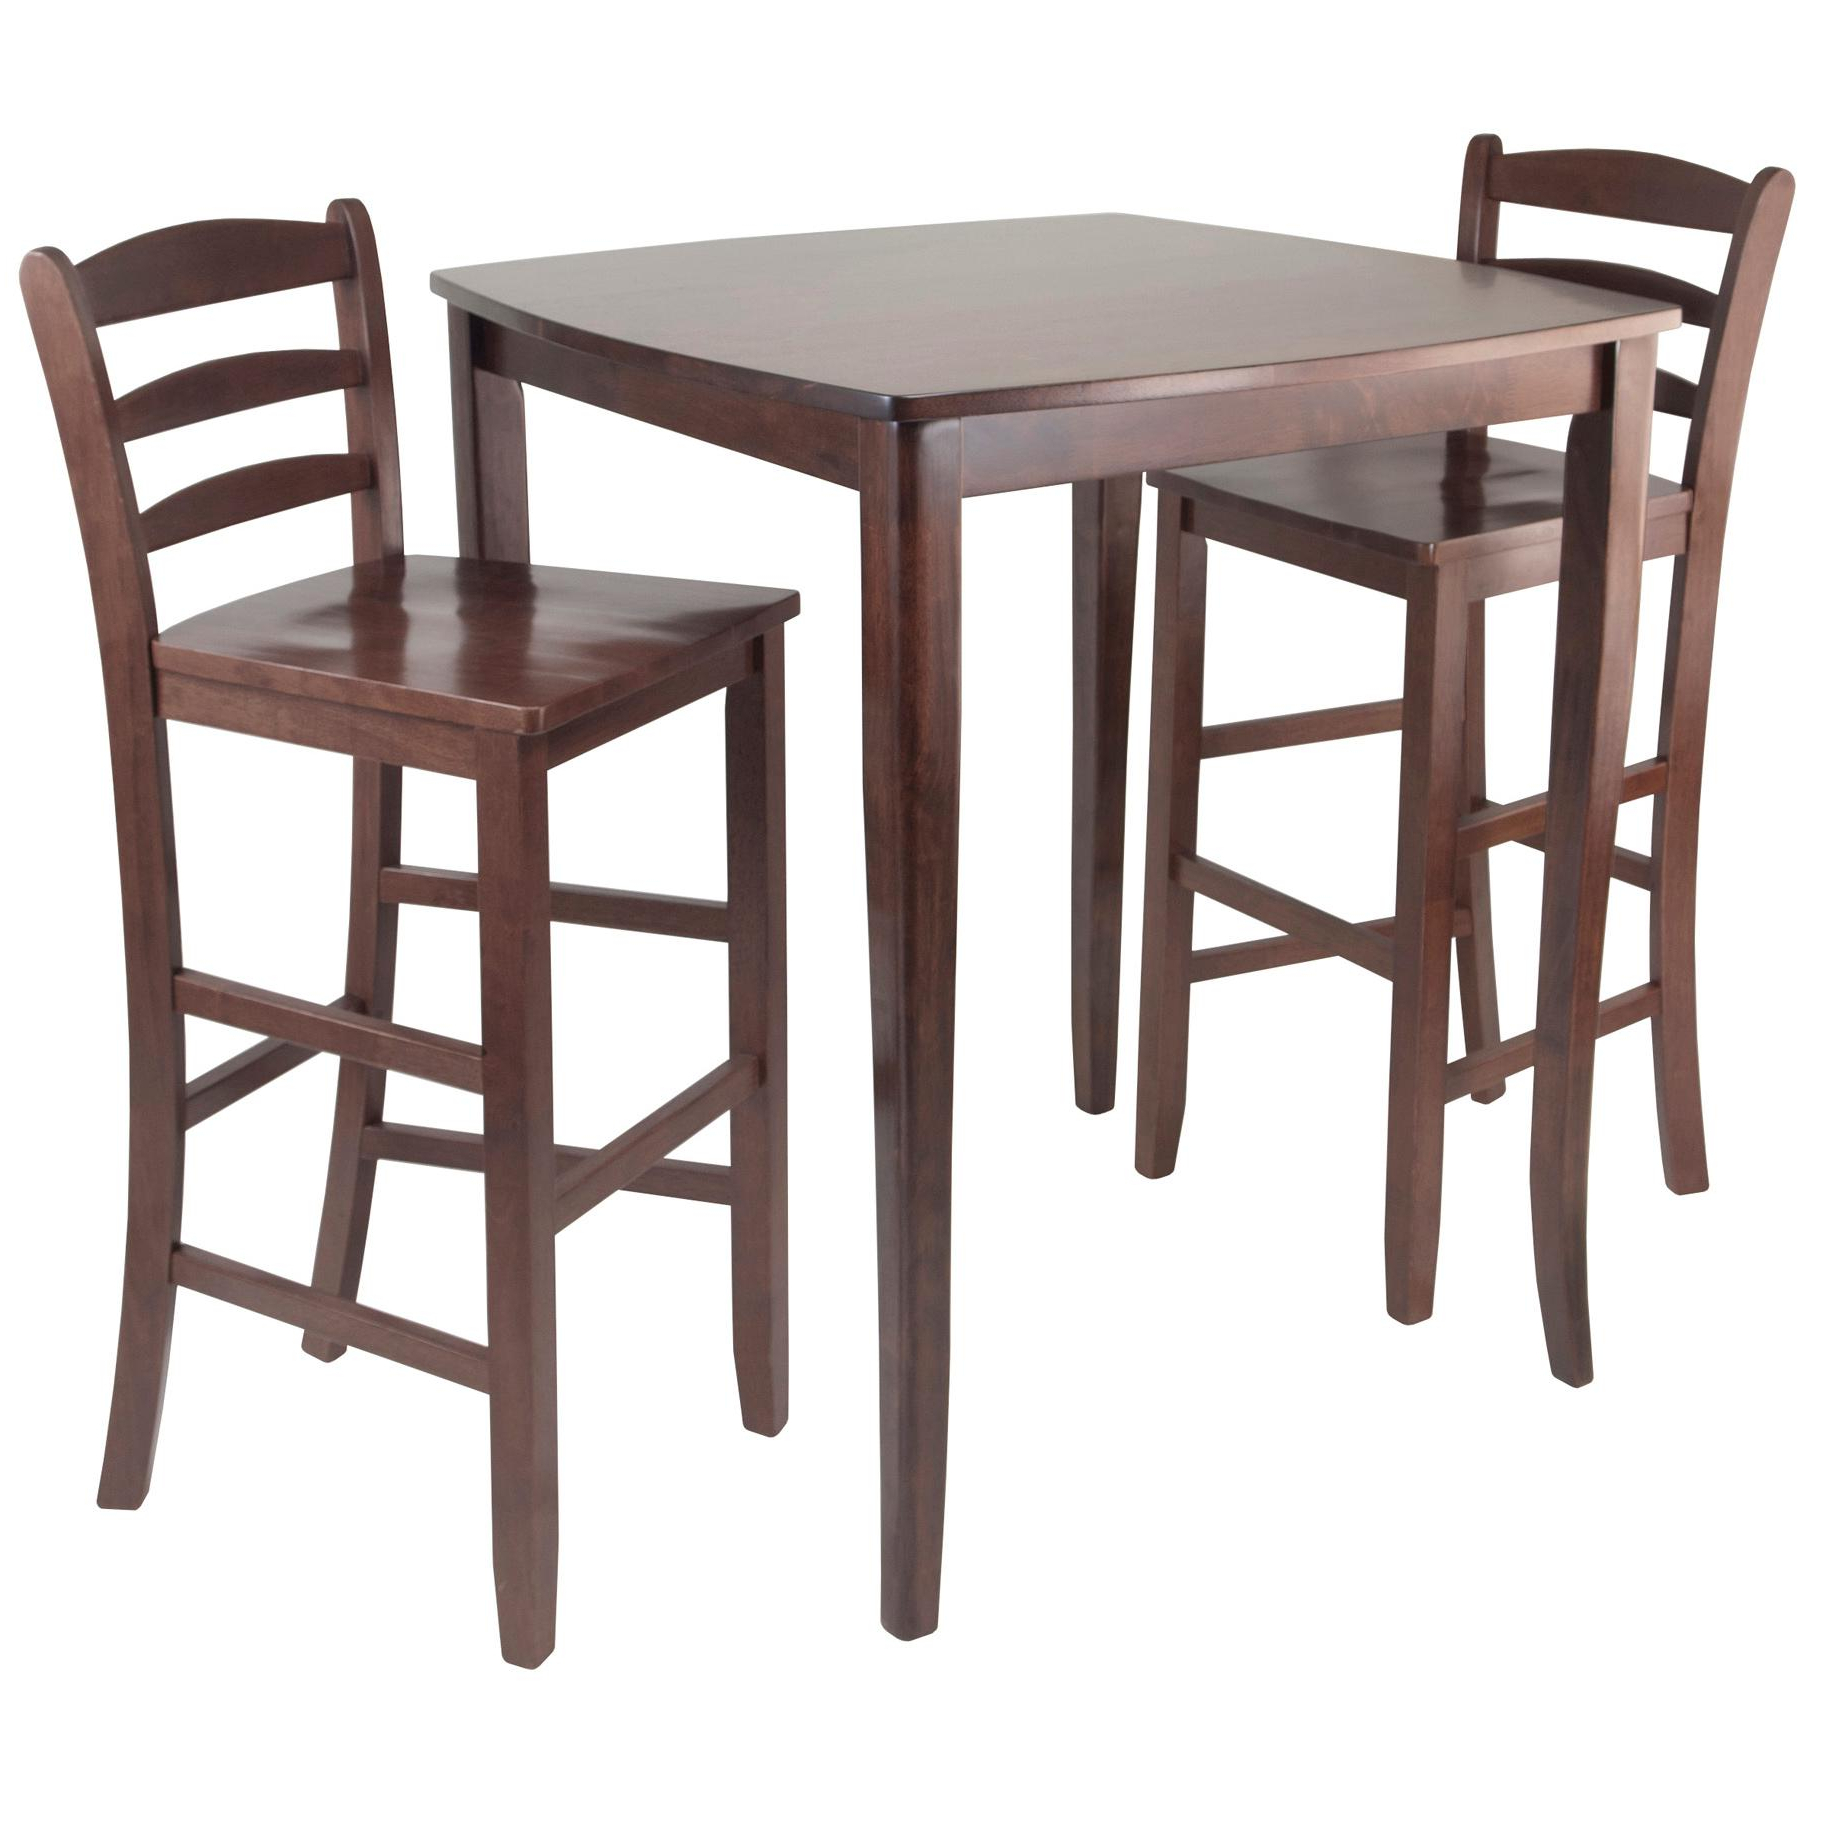 Recent Winsome 3 Piece Counter Height Dining Sets Intended For Winsome Inglewood High/pub Dining Table With Ladder Back Stool, 3 Piece (View 7 of 20)